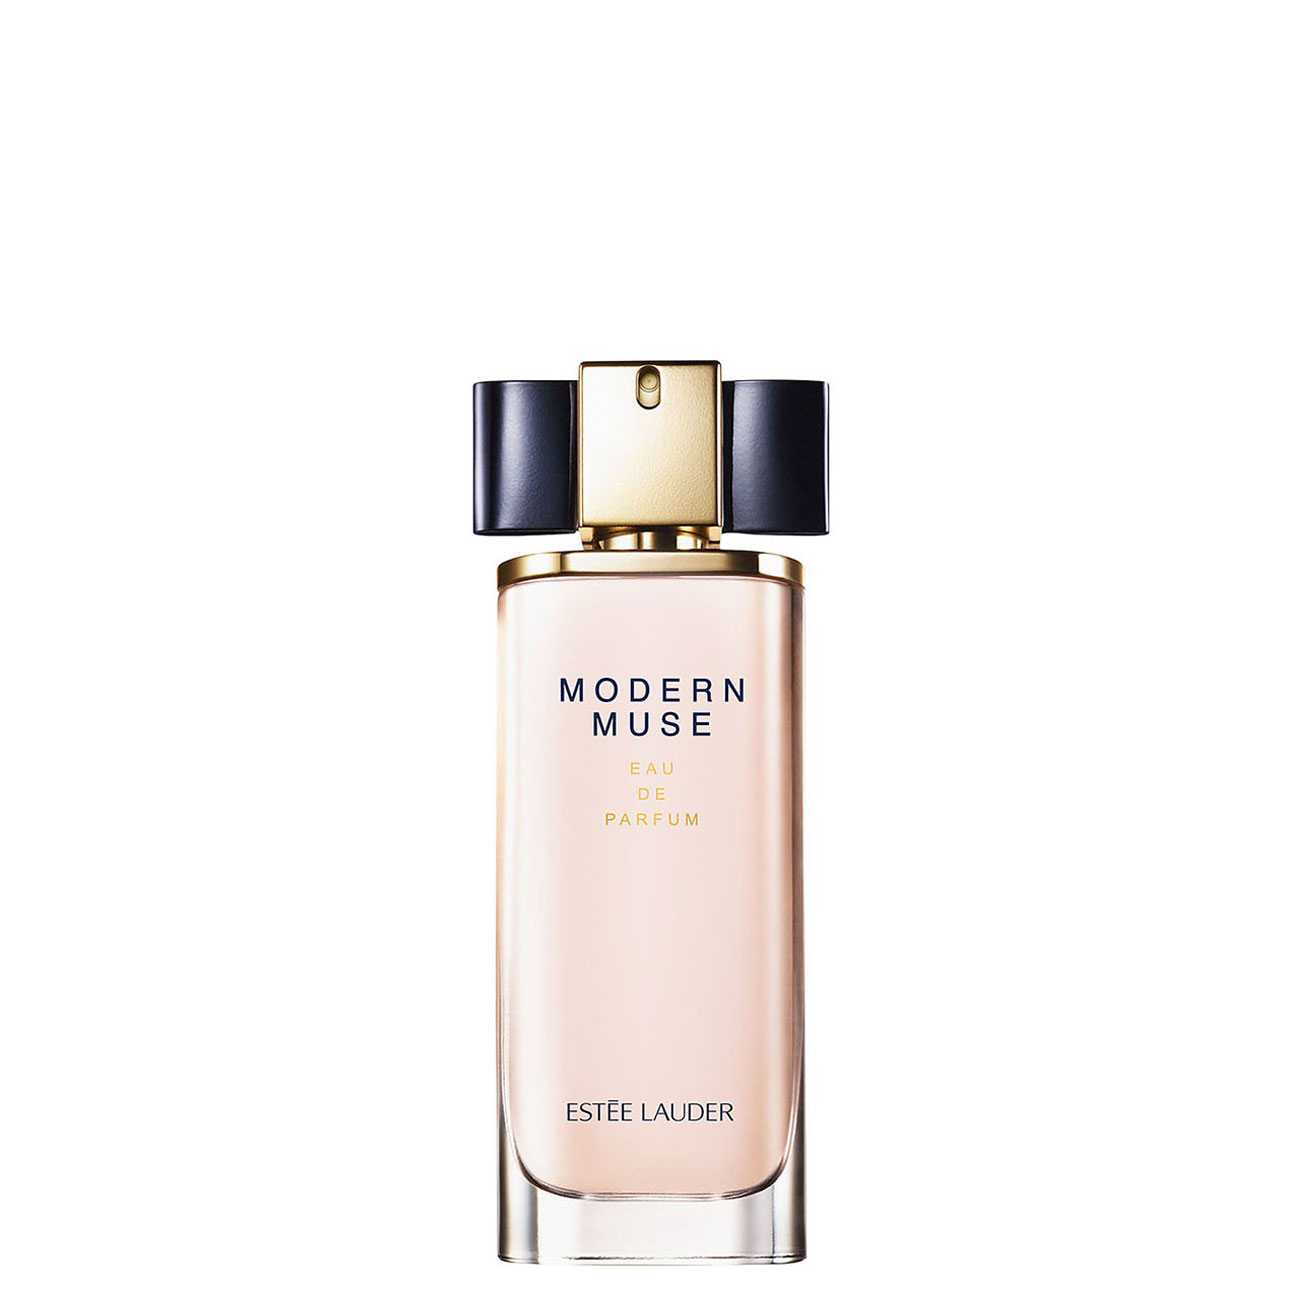 MODERN MUSE 50ml imagine